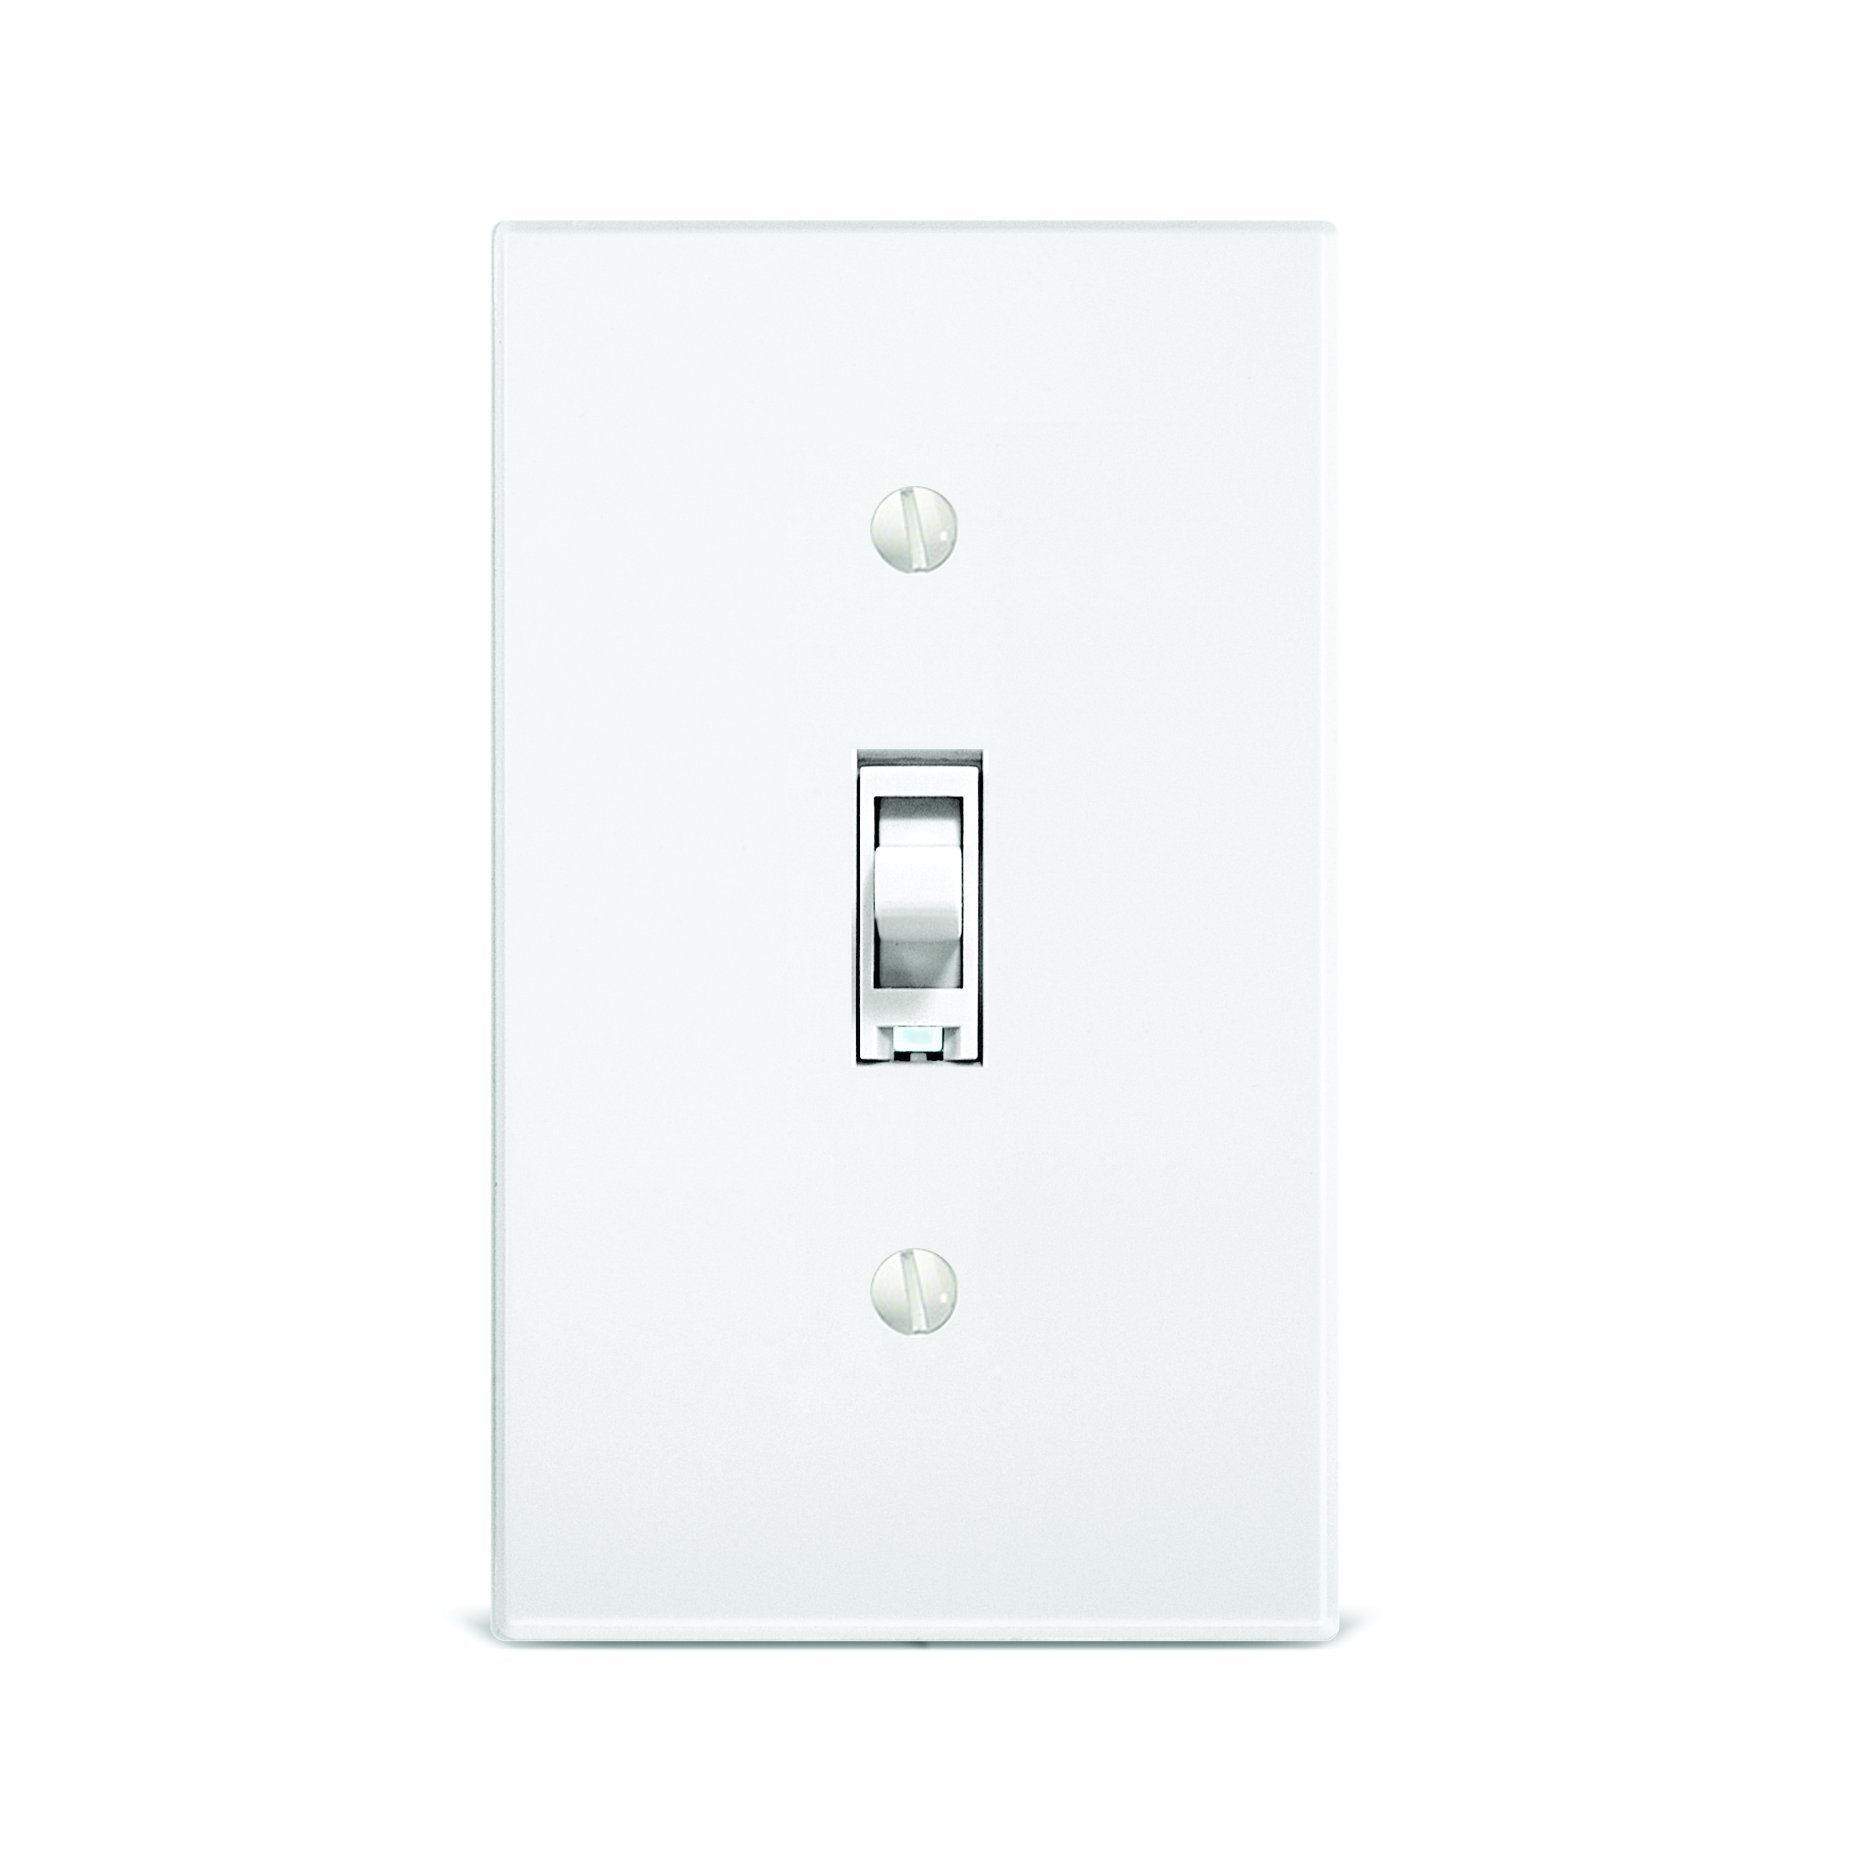 Insteon Sw Togglelinc Relay Insteon Remote Control On Off Switch Non Dimm